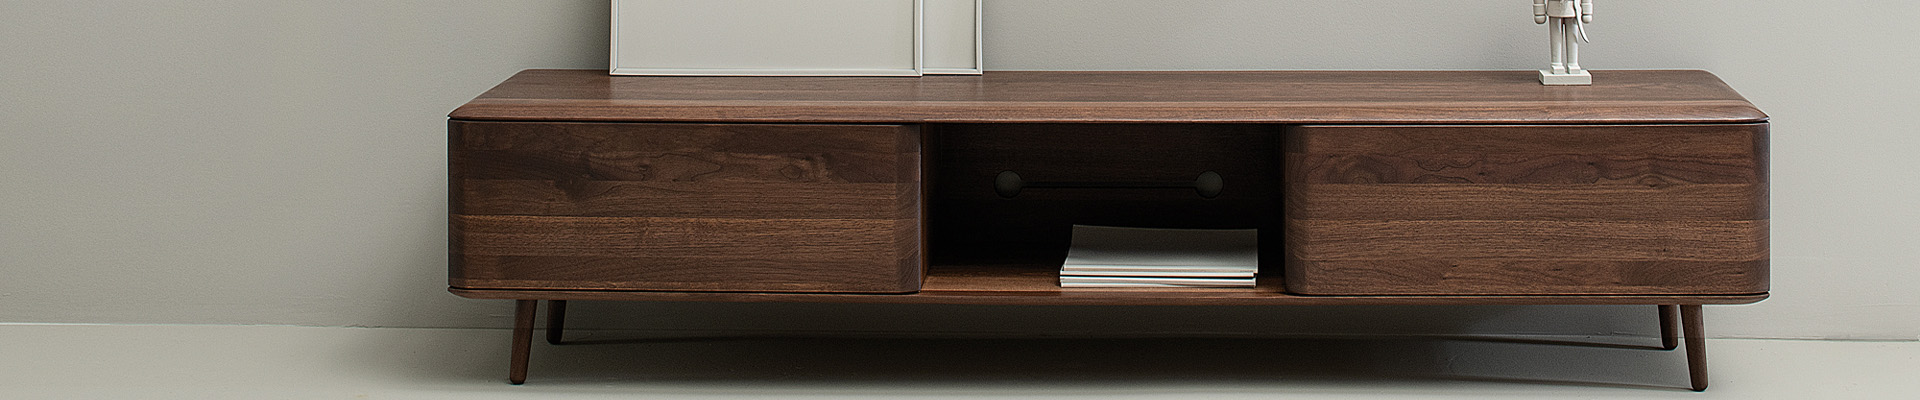 Sideboards | Kommoden